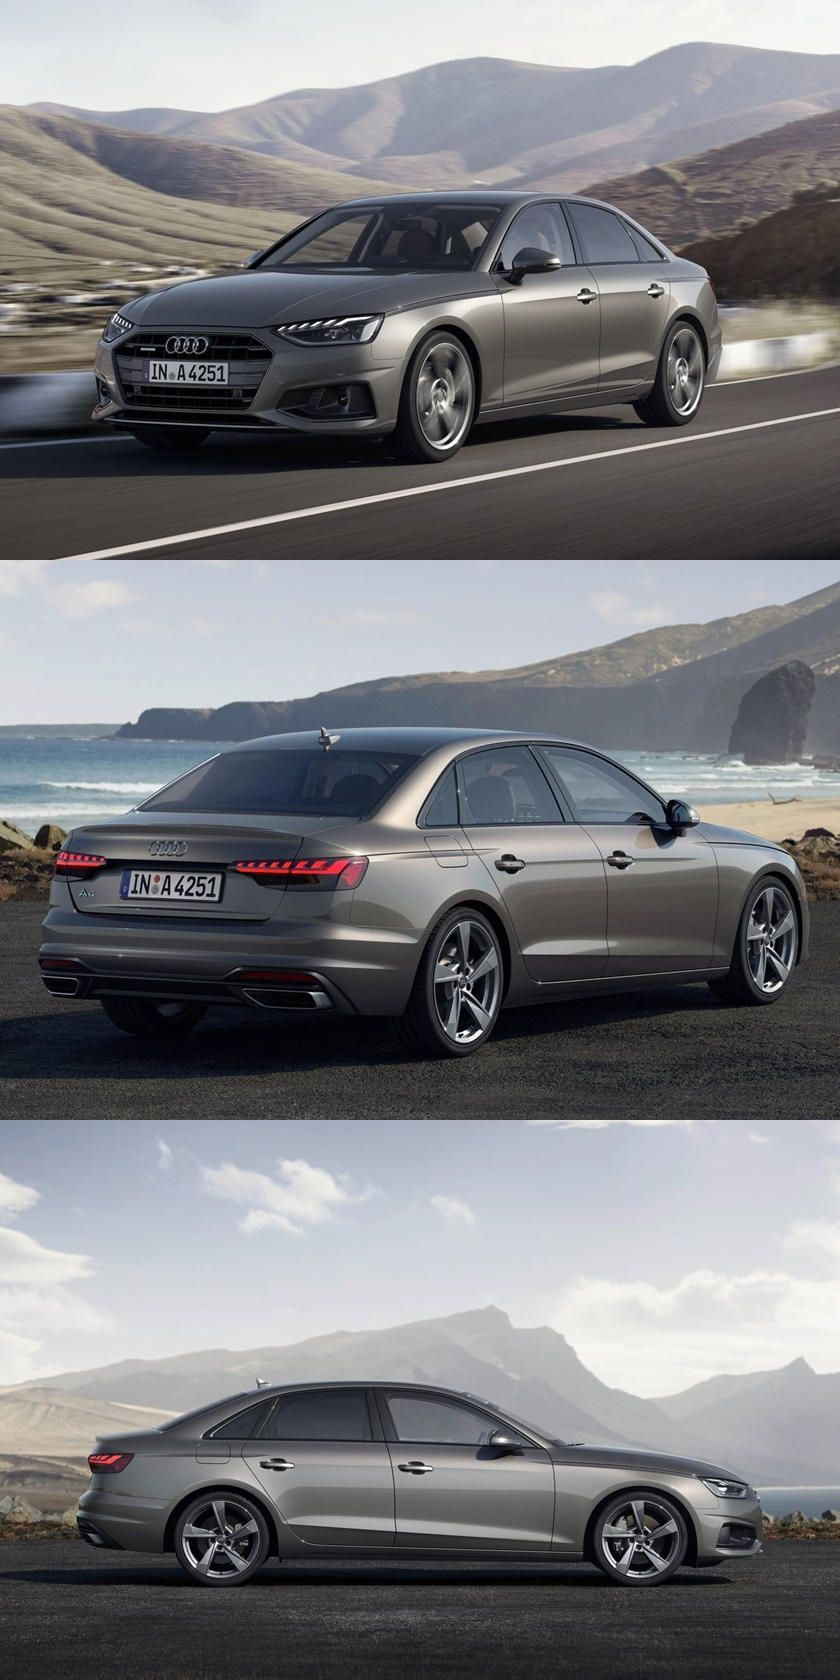 2020 Audi A4 Pricing Announced Surprisingly The Starting Price Is Lower Than The 2019 Model In 2020 Audi A4 Price Audi Audi A4